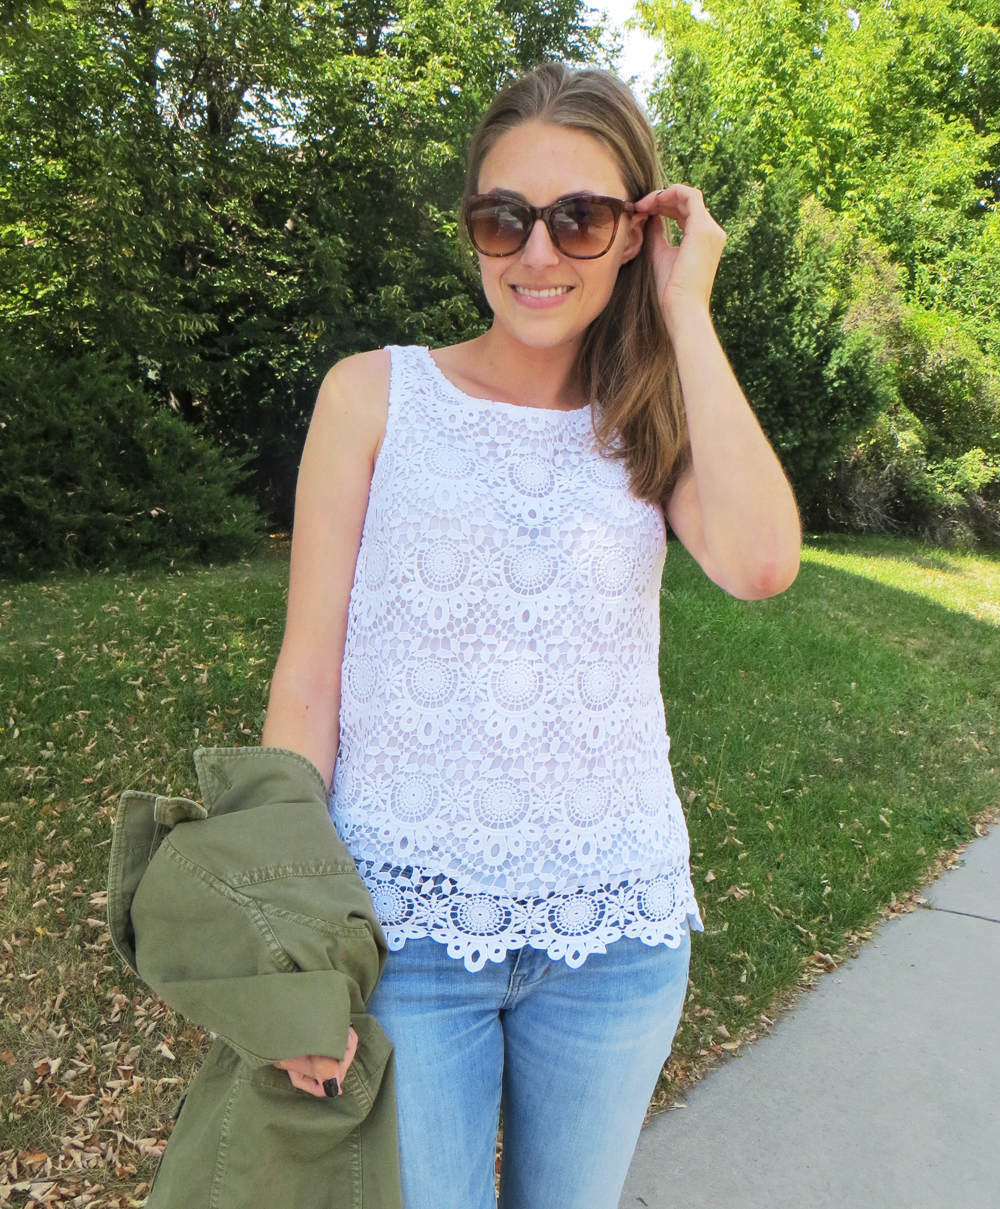 White crocheted top, light wash denim, army green jacket -- Cotton Cashmere Cat Hair